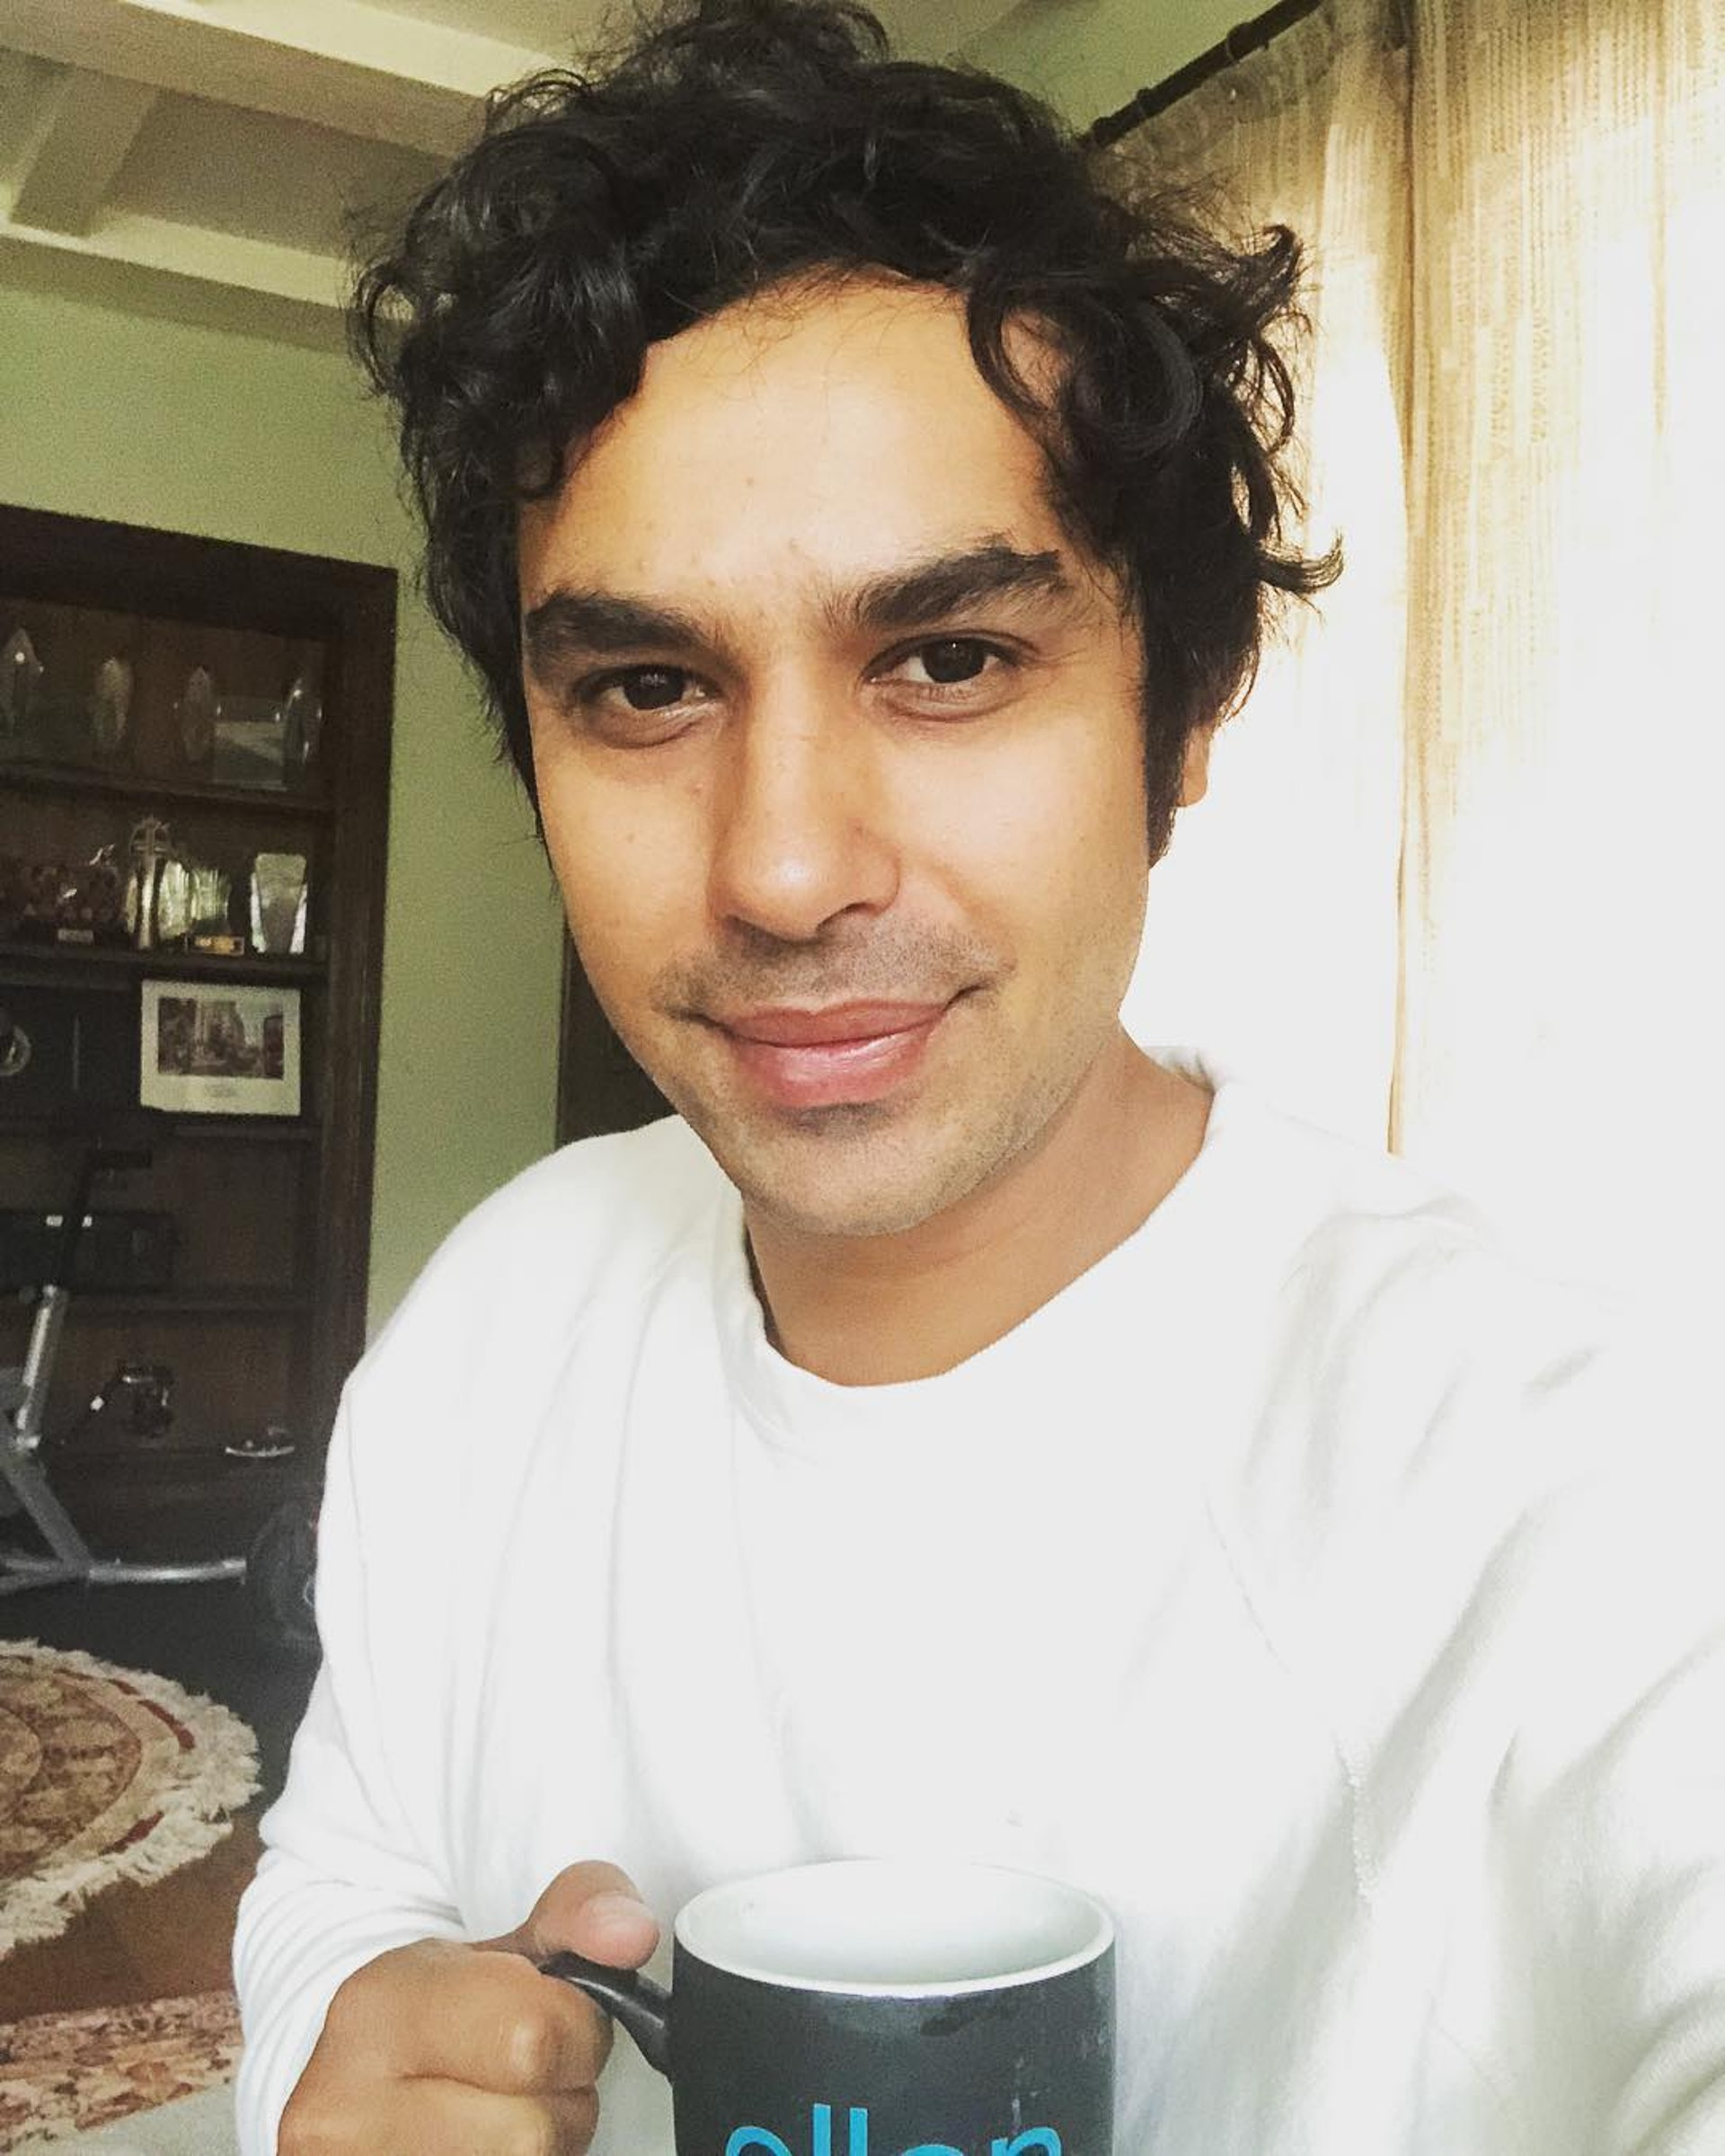 第四位:Kunal Nayyar《Big Bang Theory》